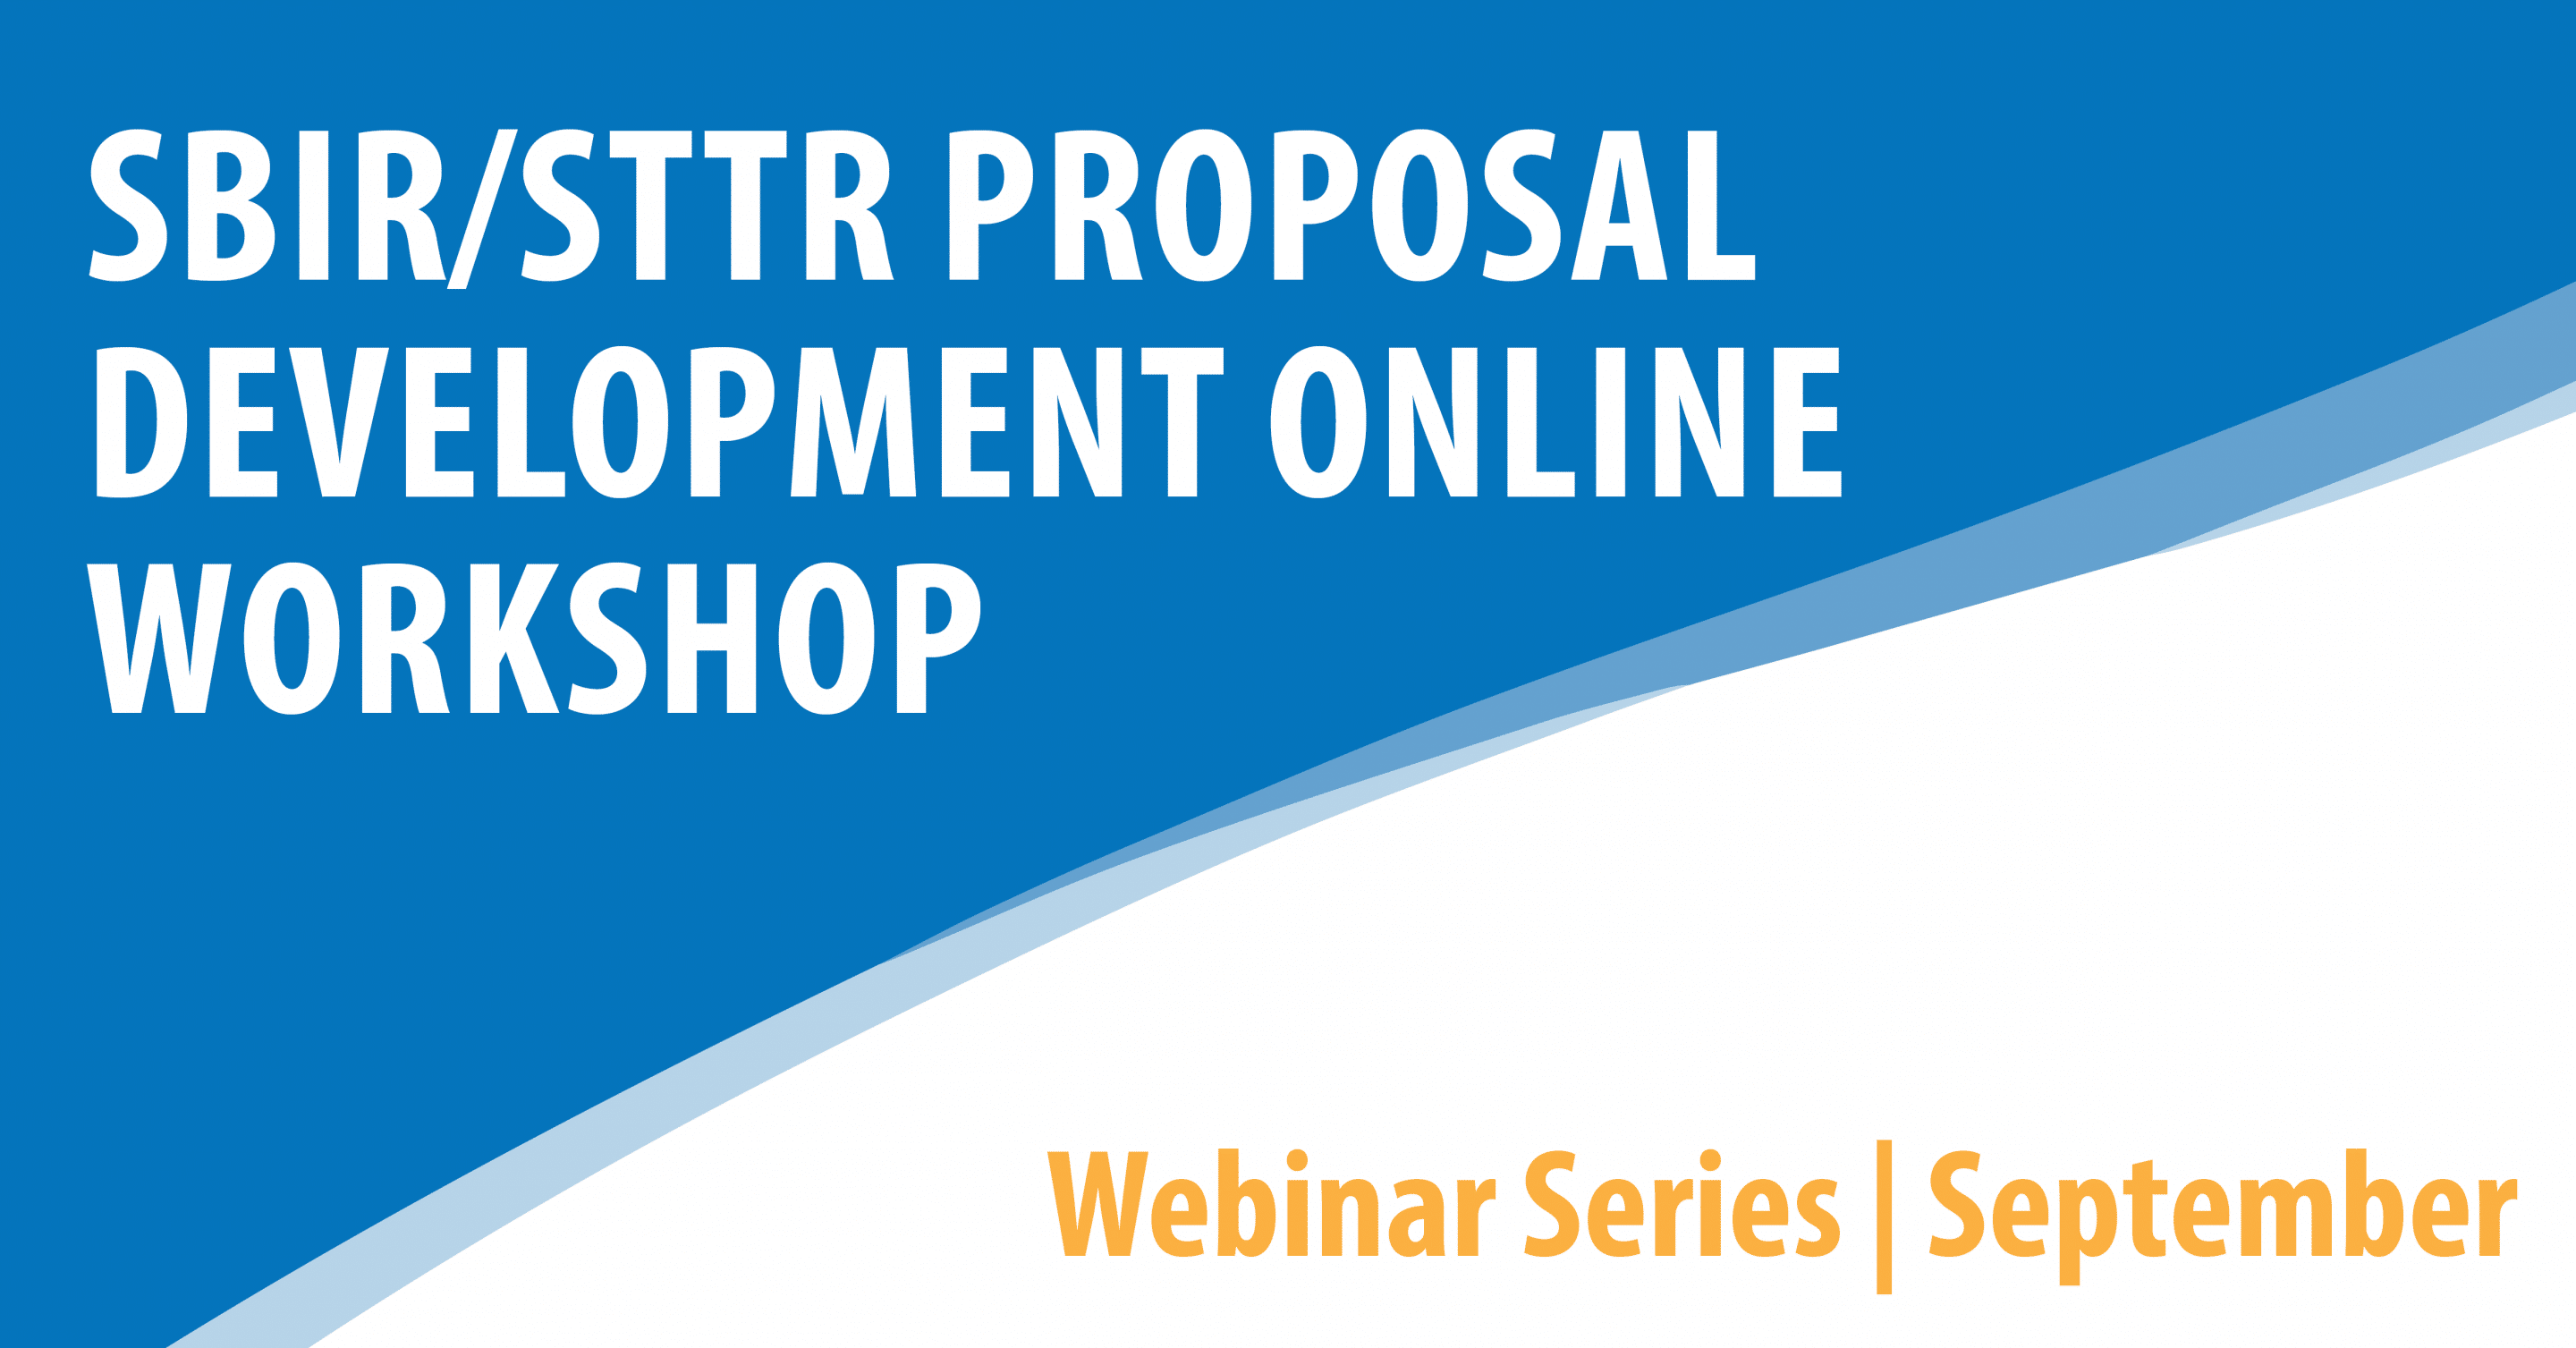 SBIR/STTR Proposal Development Online Workshop Webinar Series